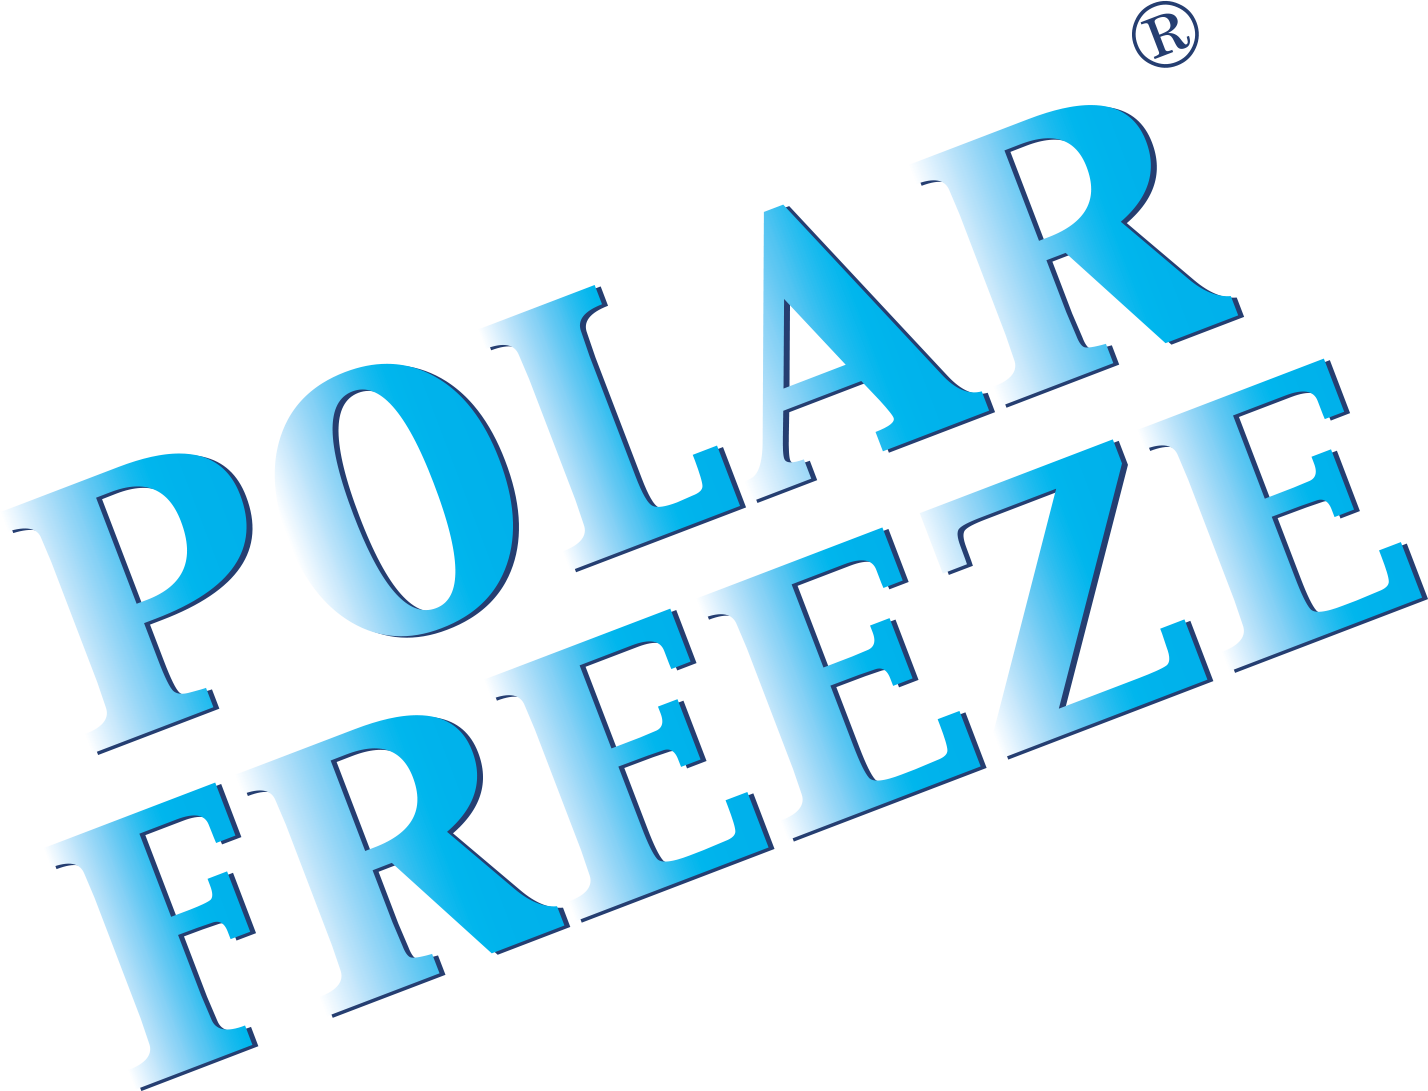 POLAR FREEZE logga